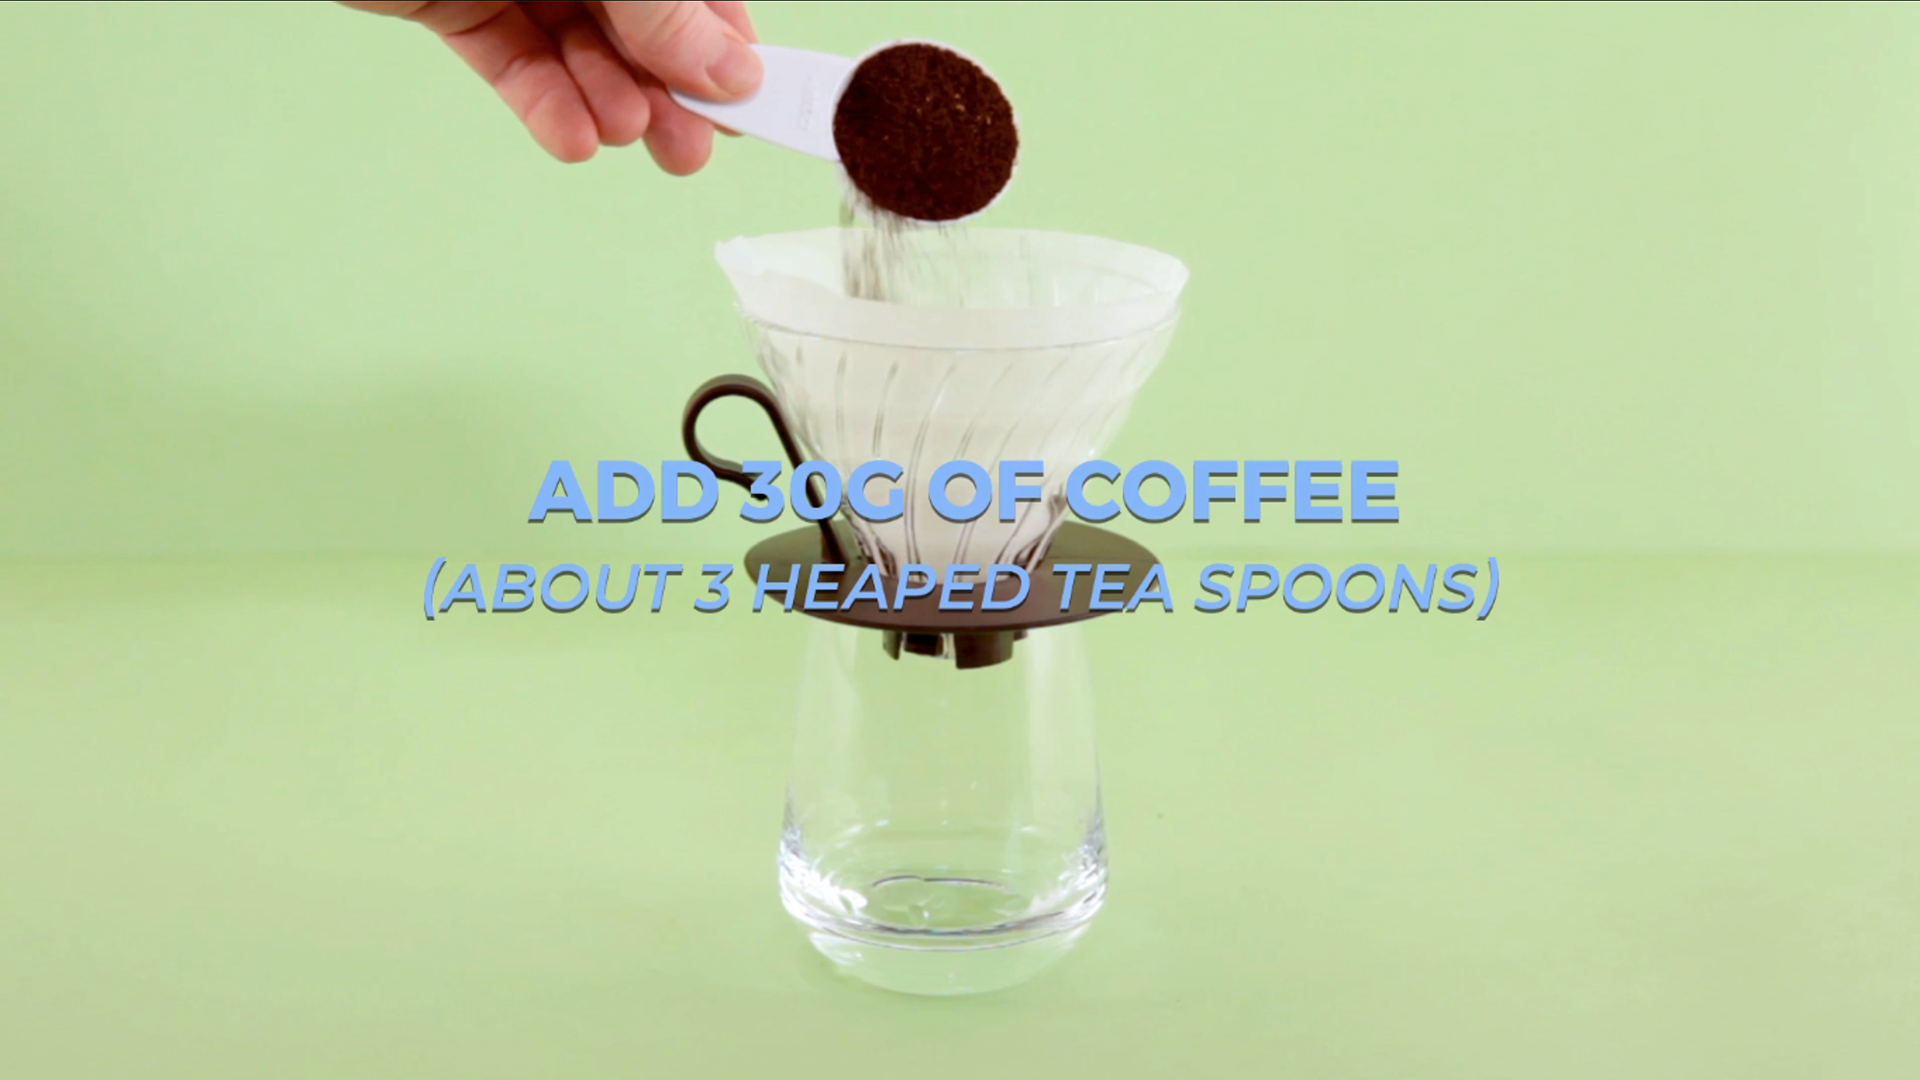 Discard the water from your cup and replace the dripper.